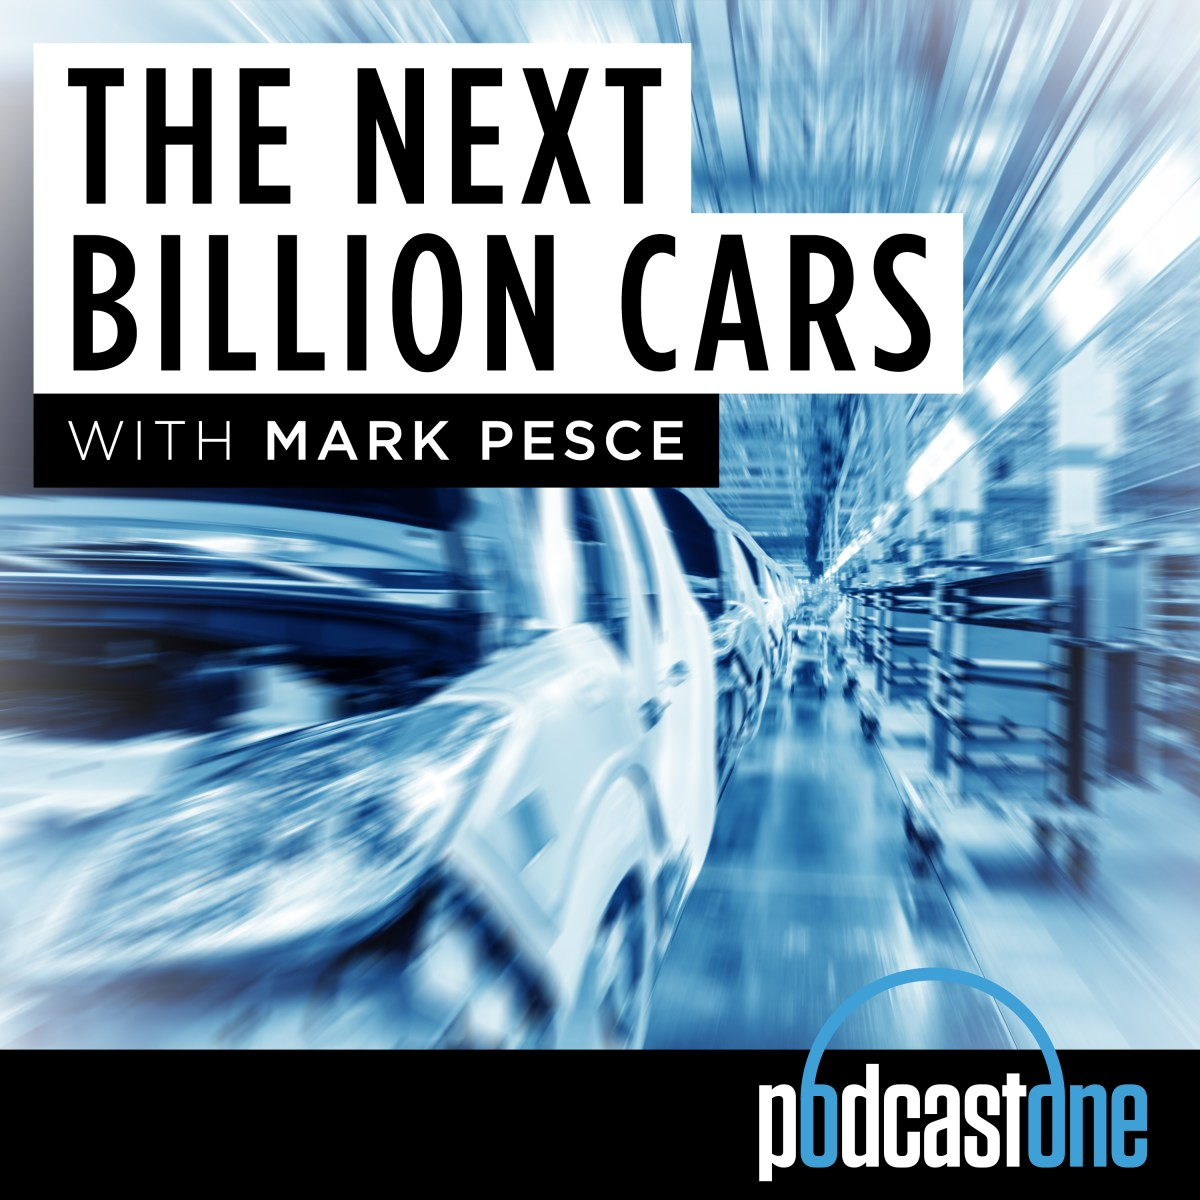 THE NEXT BILLION CARS Episode 6: The Next Billion Passengers